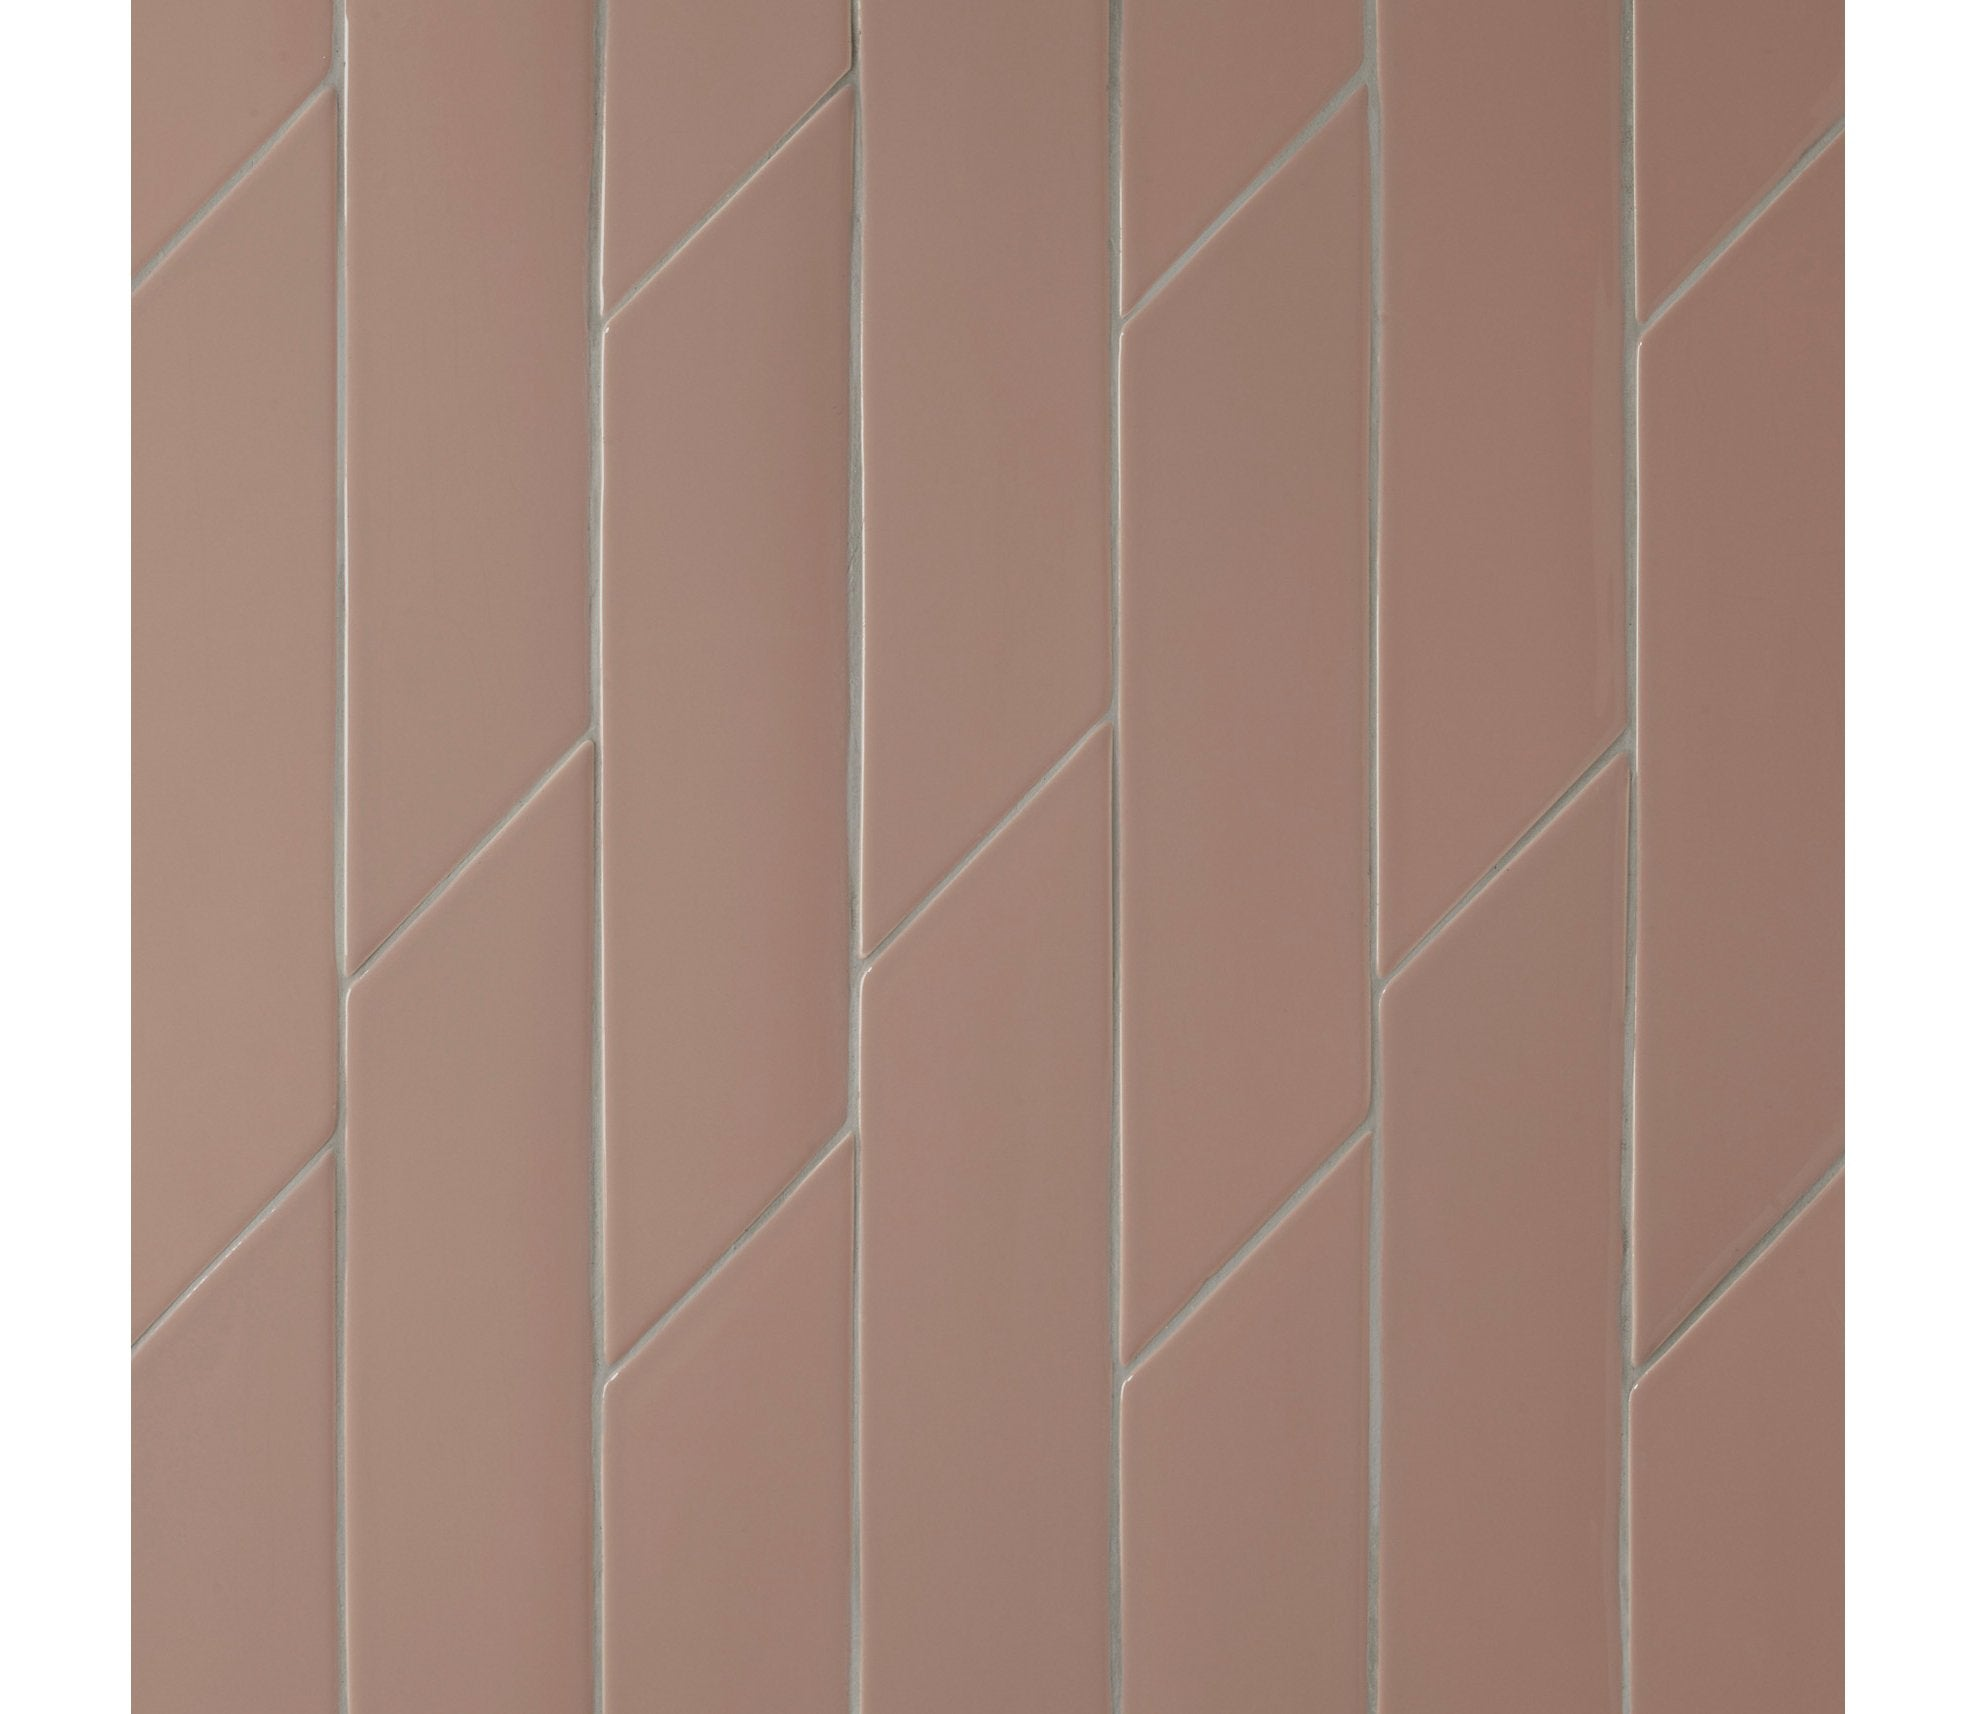 Hanley Traditional Tiles Product Image 18